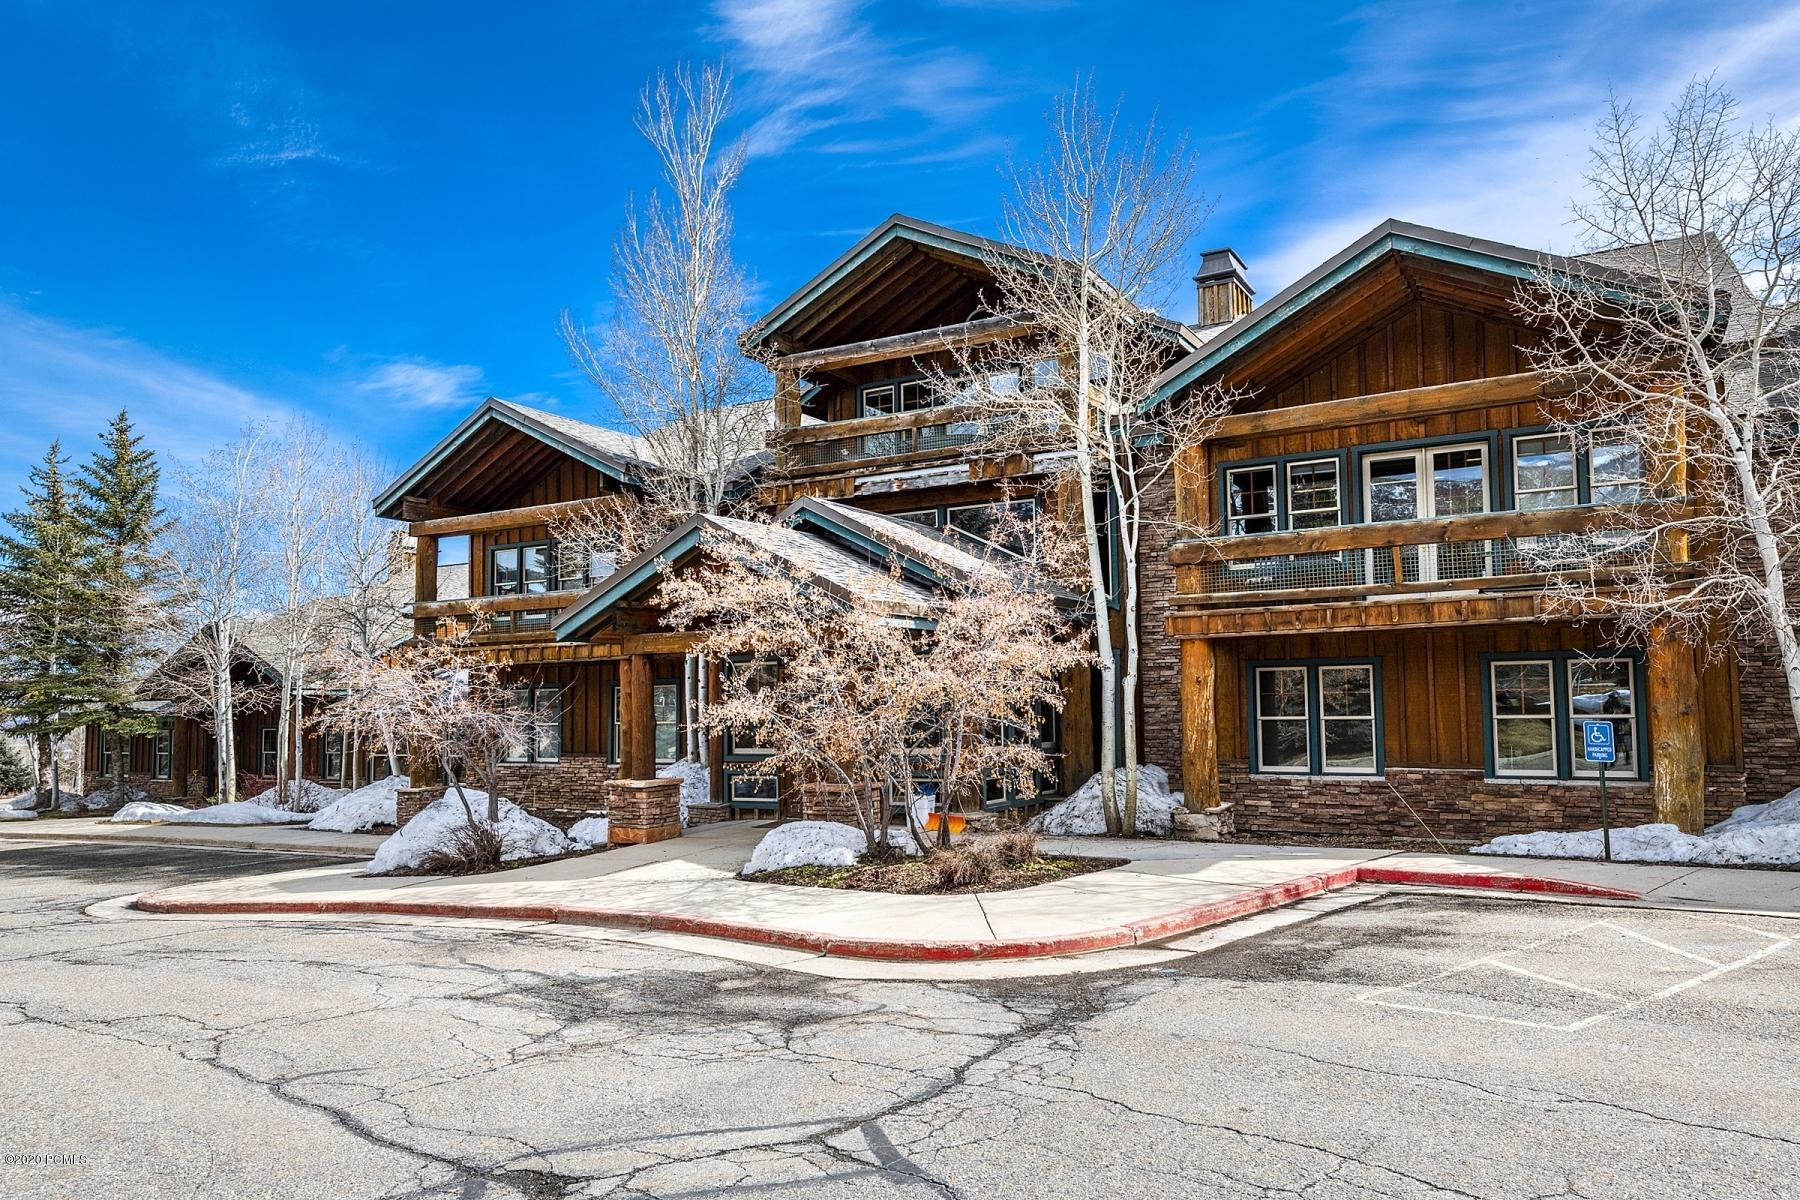 1777 Sun Peak Drive, Park City, Utah 84098, ,Commercial,For Sale,Sun Peak,20190109112430415765000000